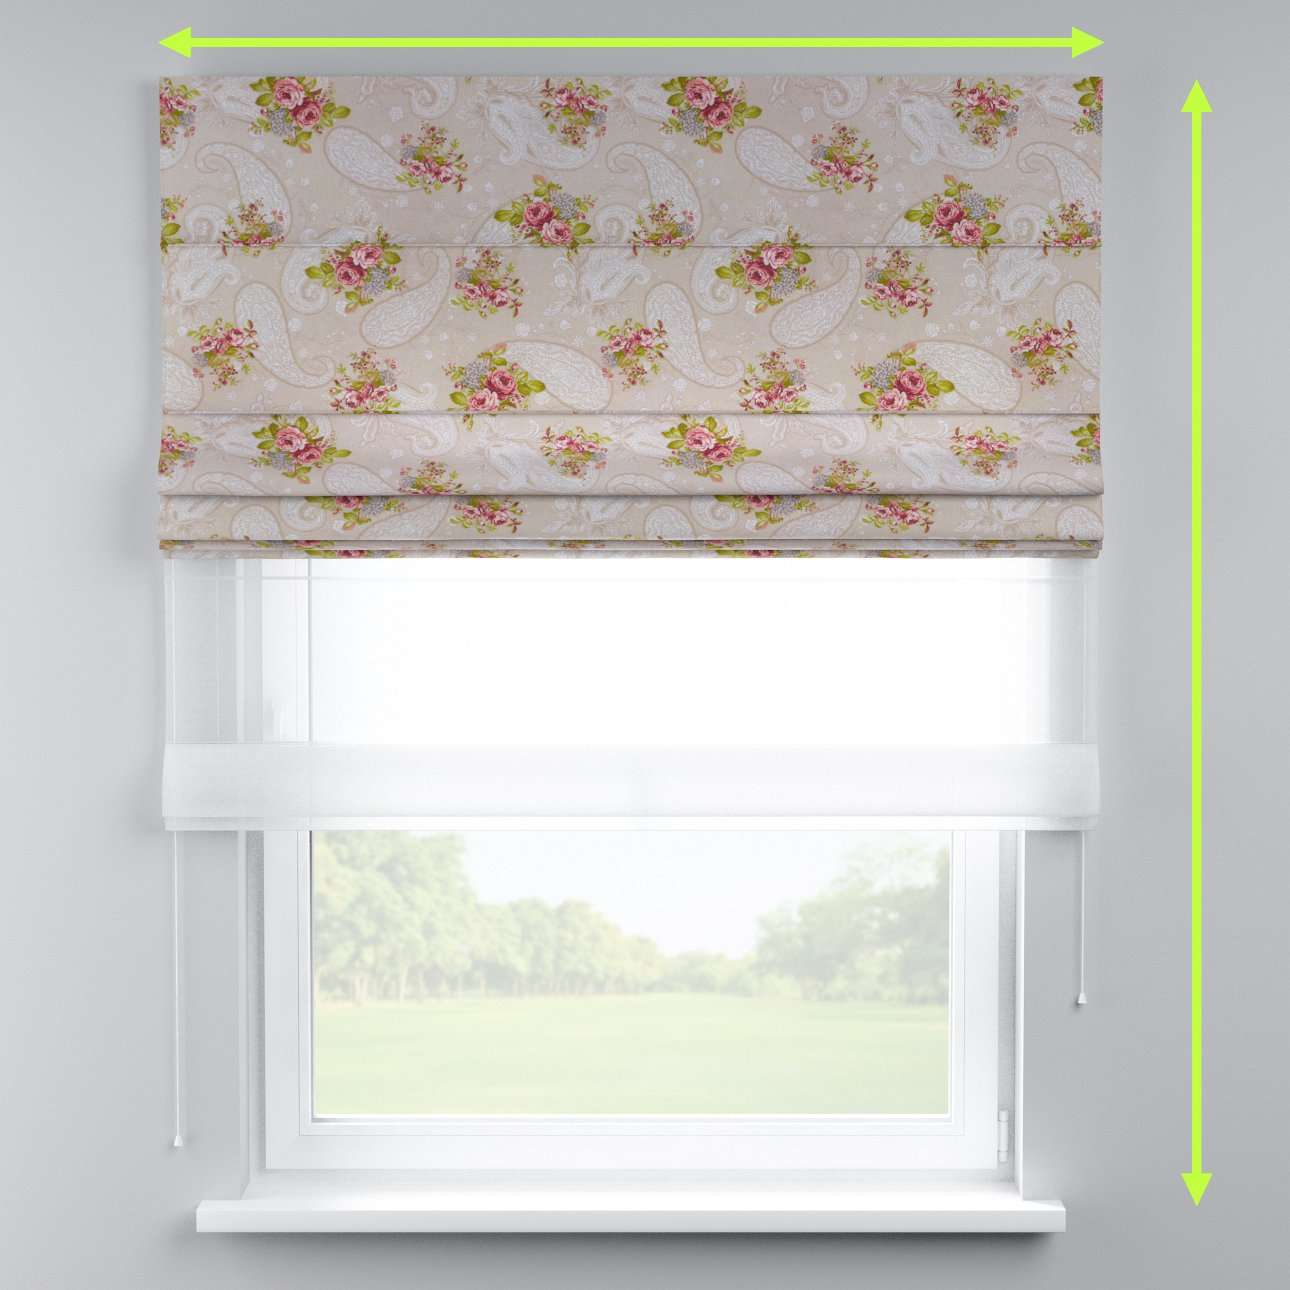 Voile and fabric roman blind (DUO II) in collection Flowers, fabric: 311-15